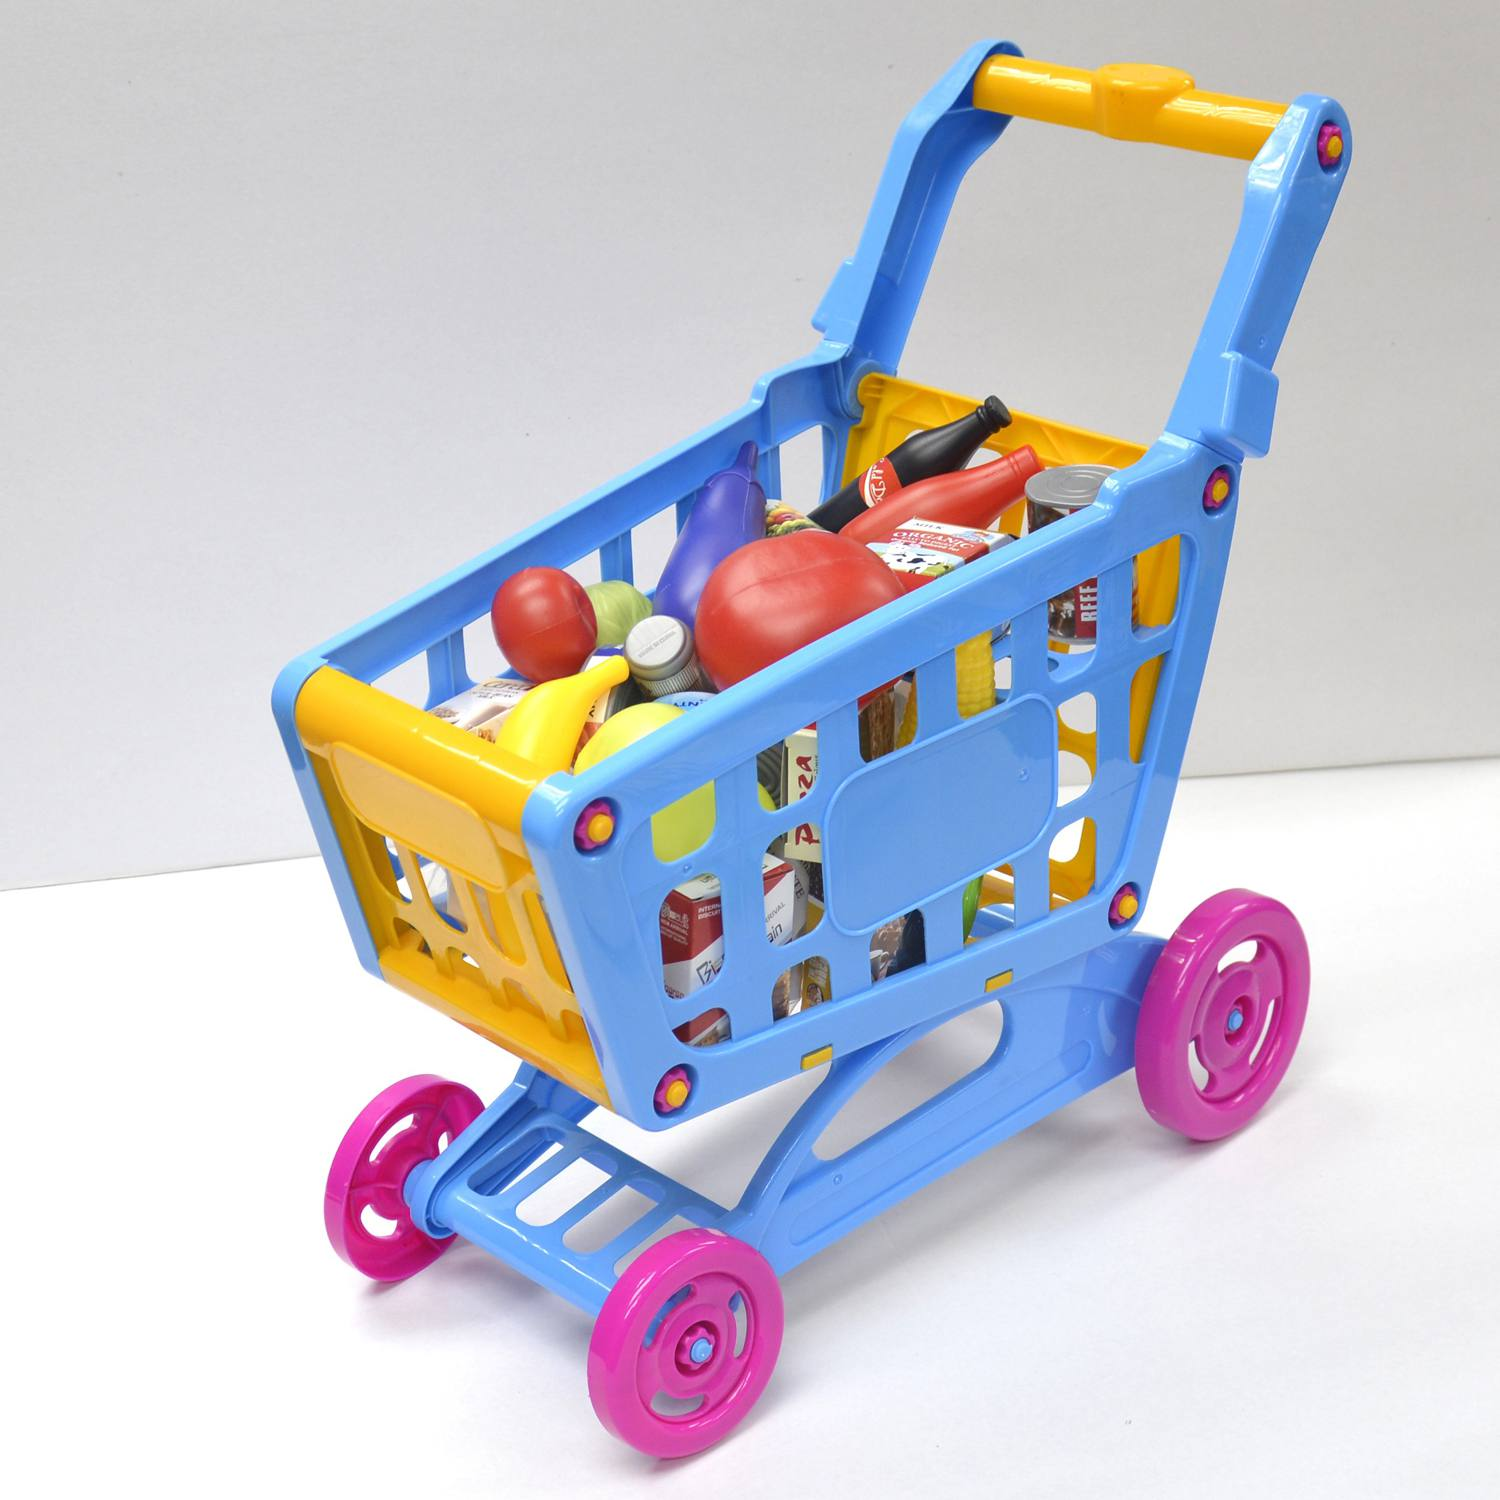 Best Baby Toys For 9 To 12 Month Olds - 9-month-old-baby-toys